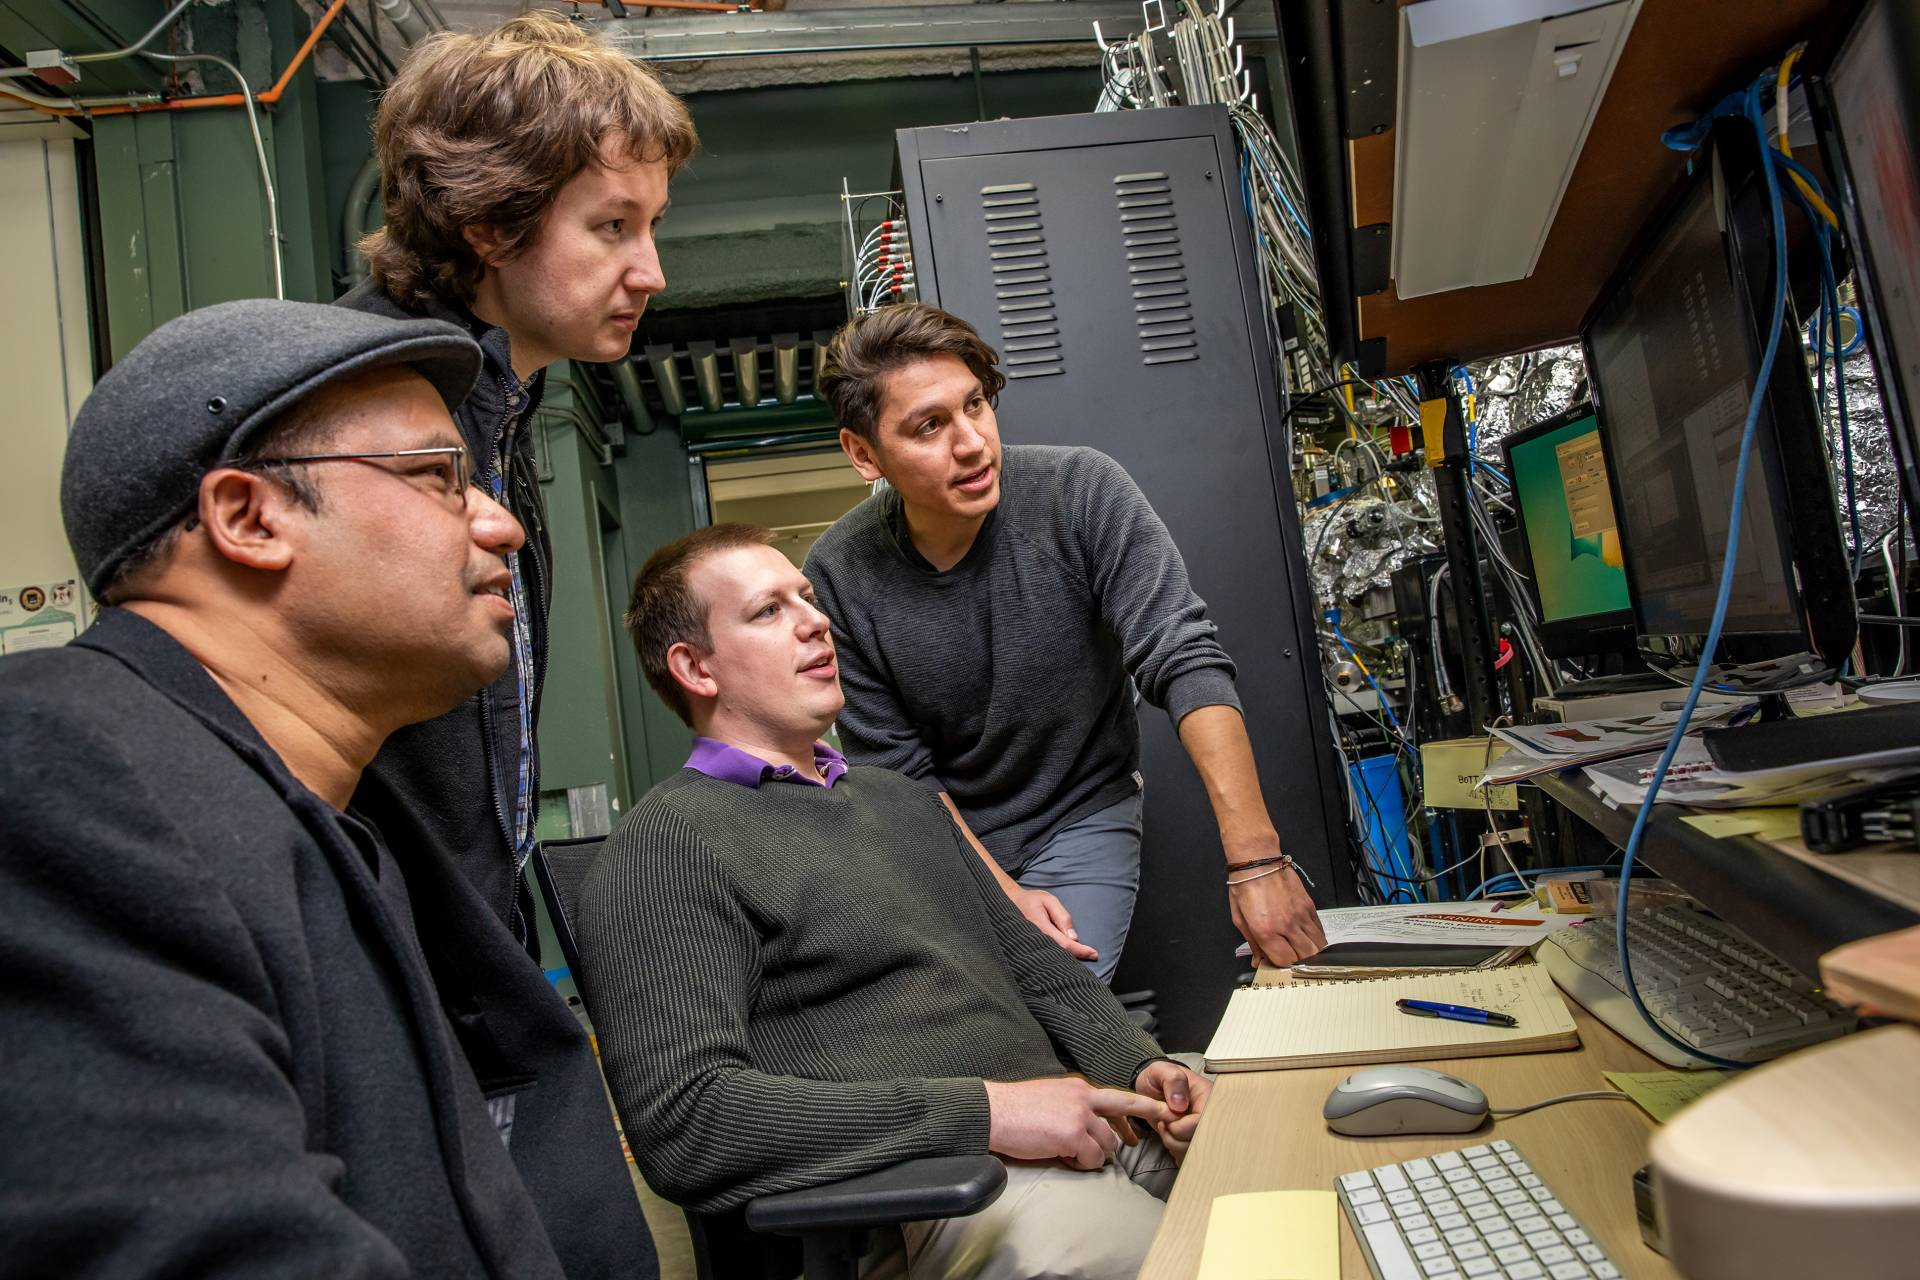 Zahid Hasan and his research team gathered around a computer